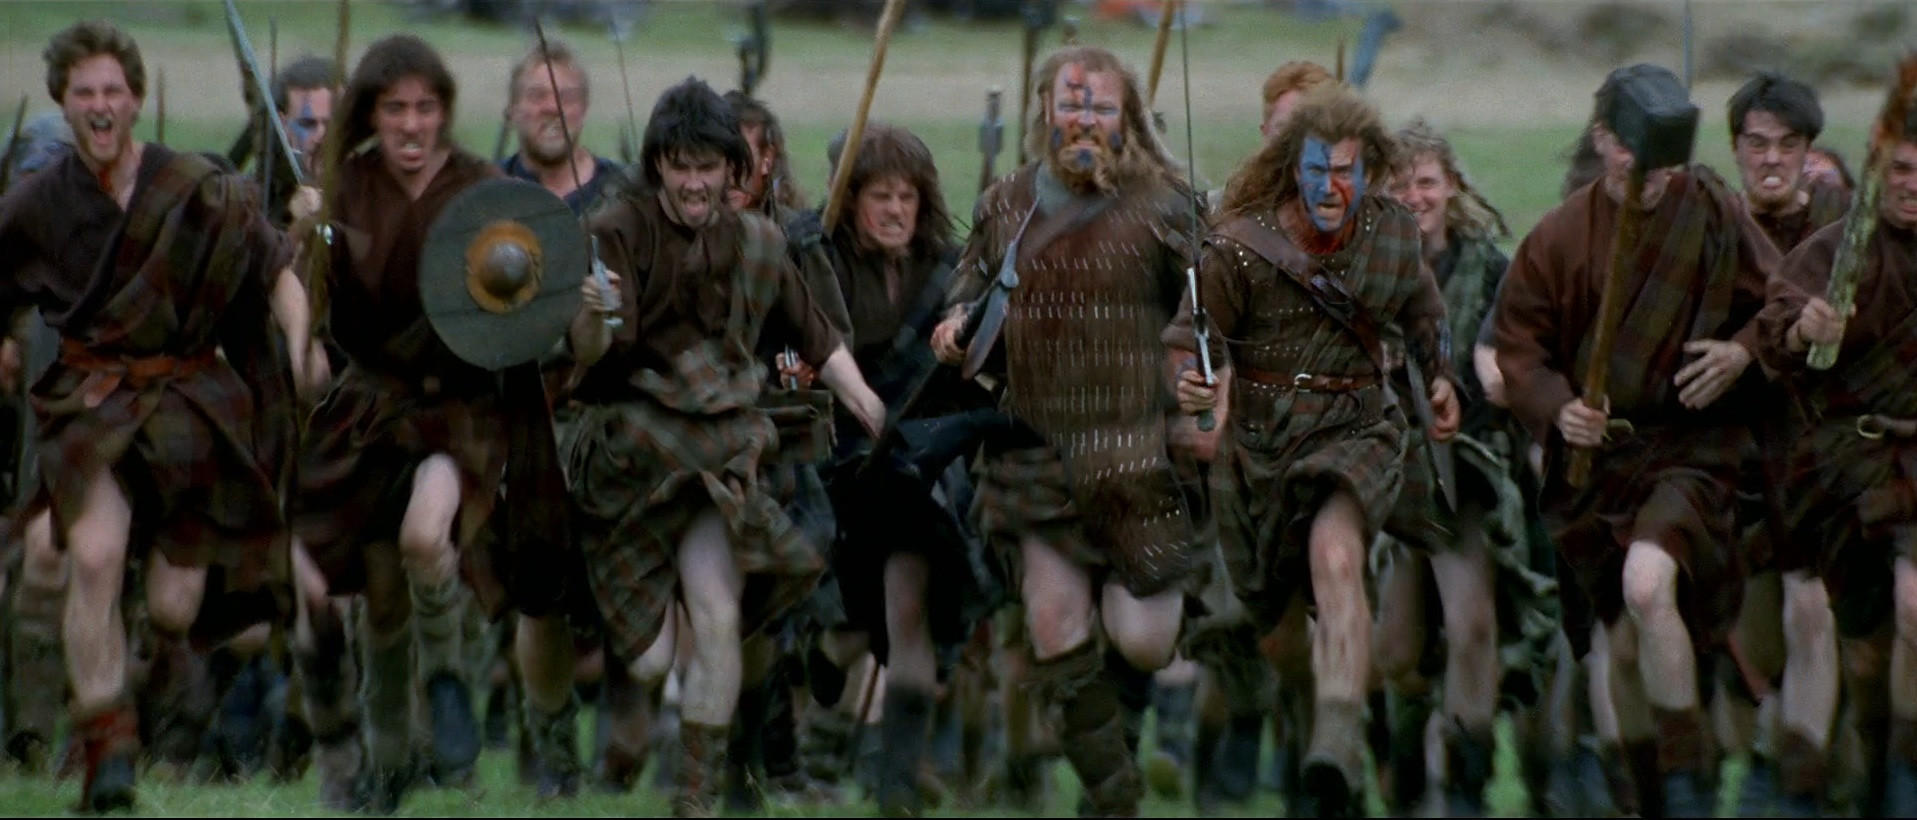 Braveheart-battle